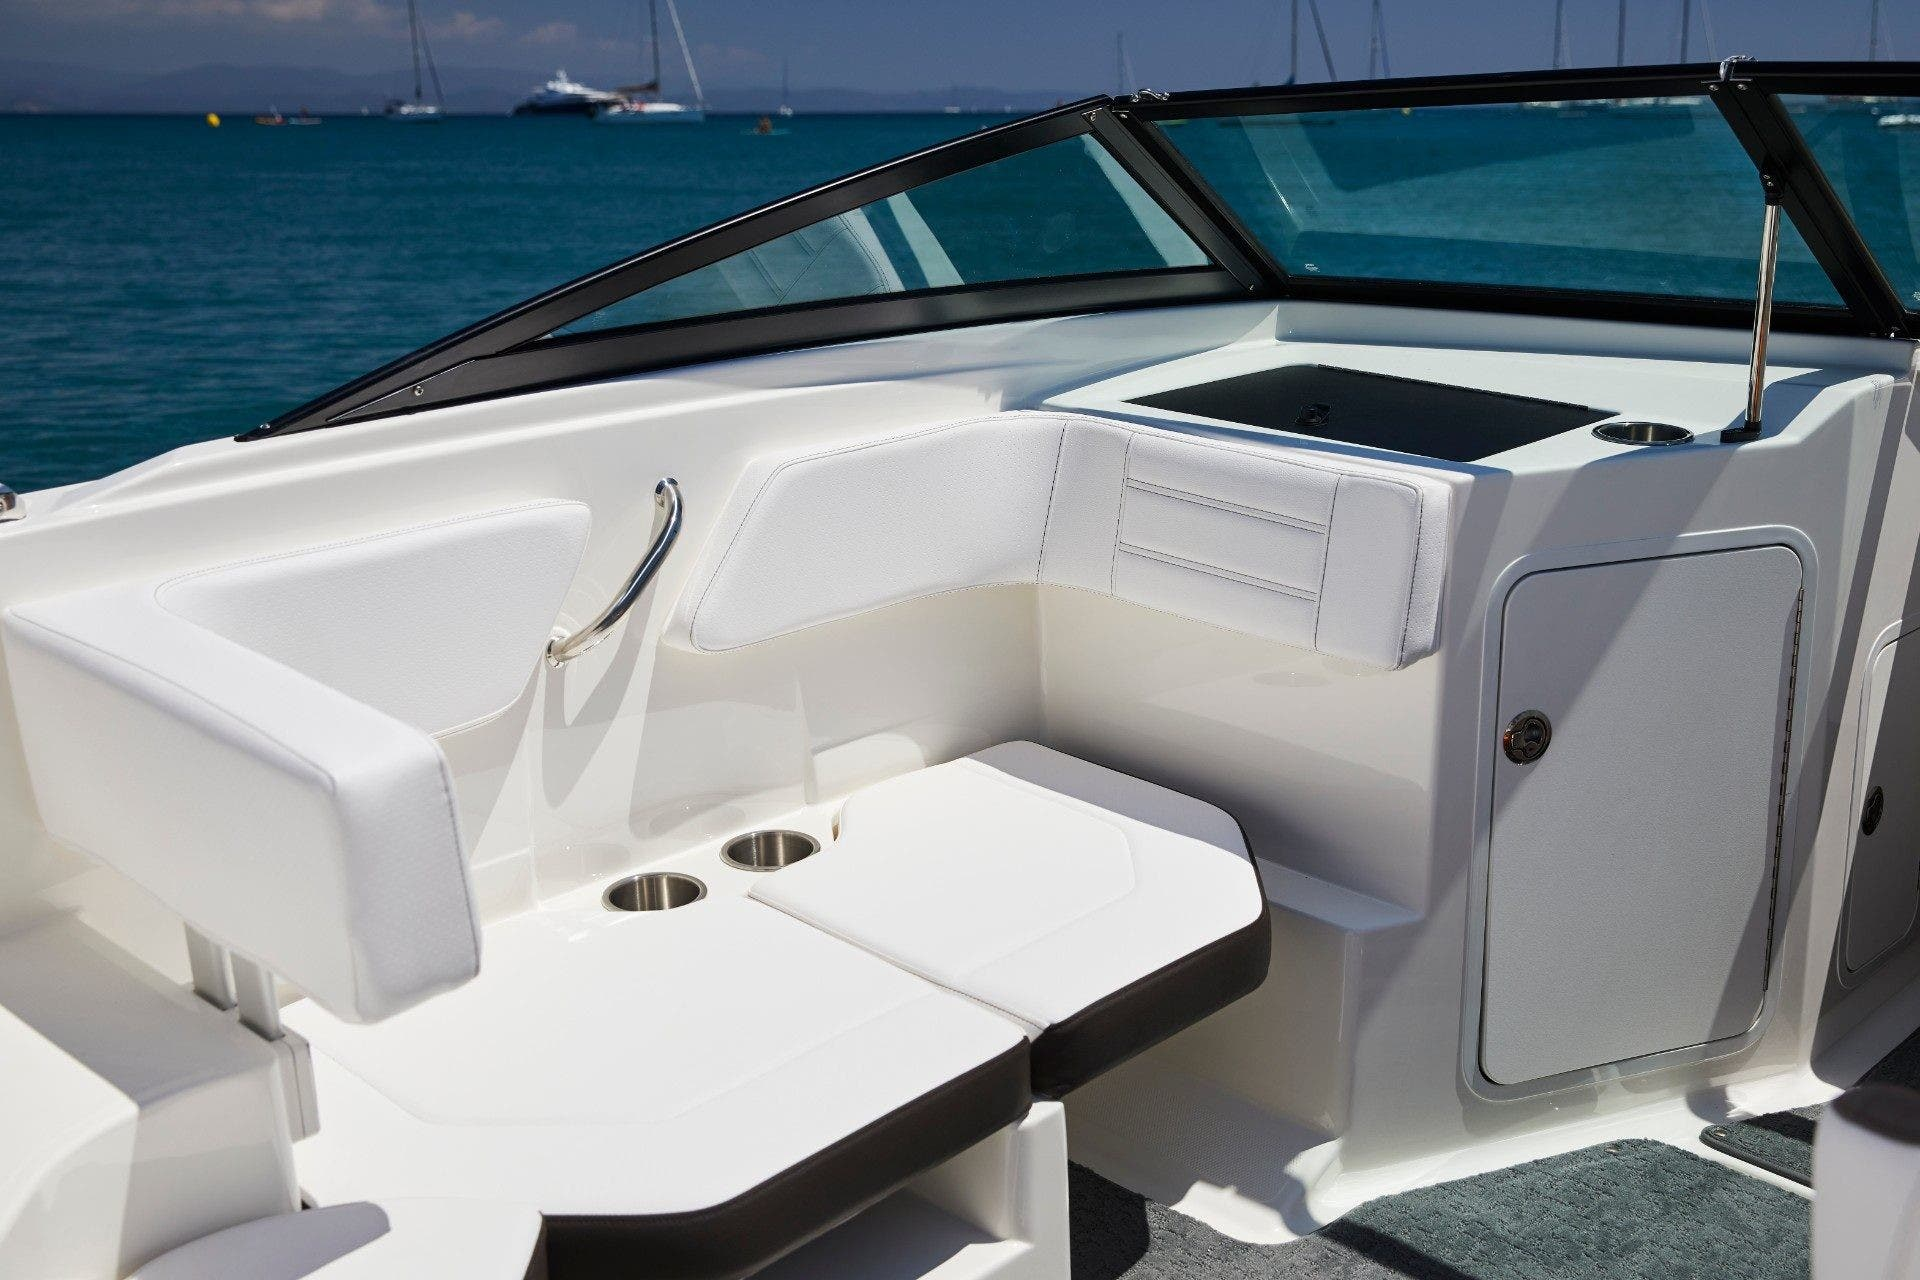 2022 Sea Ray boat for sale, model of the boat is 190spxo & Image # 4 of 5